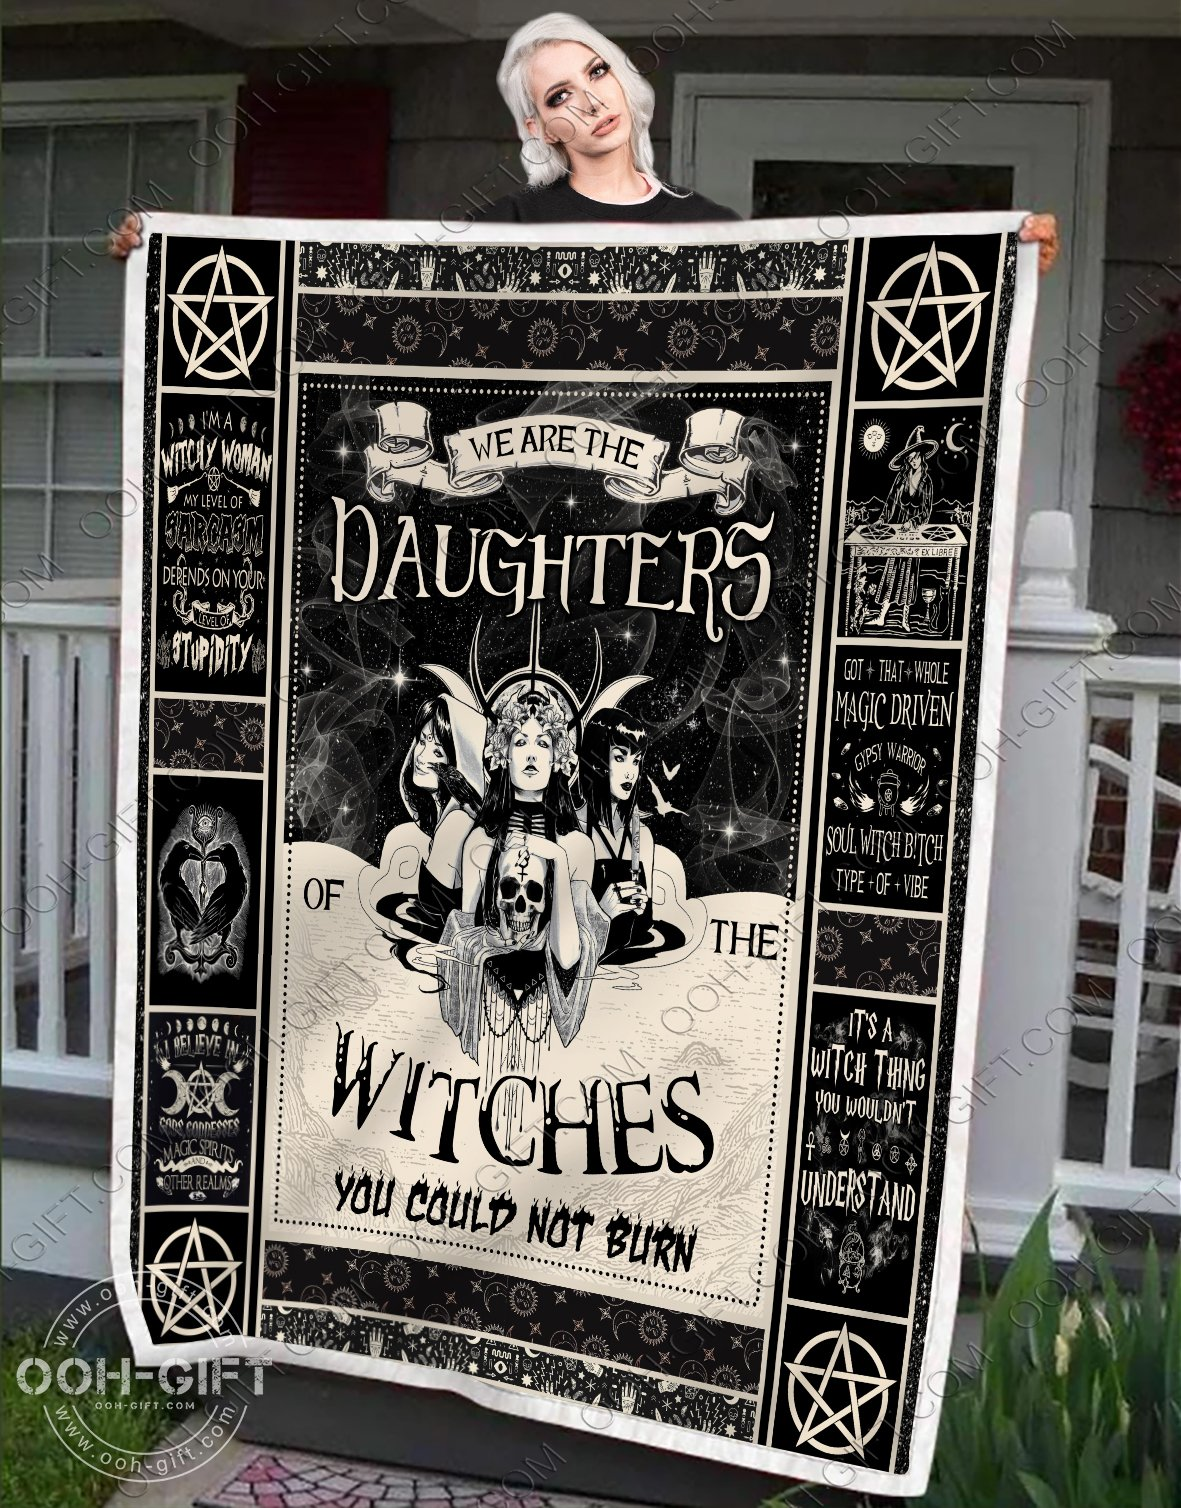 We are the daughters of the witches you could not burn blanket 3